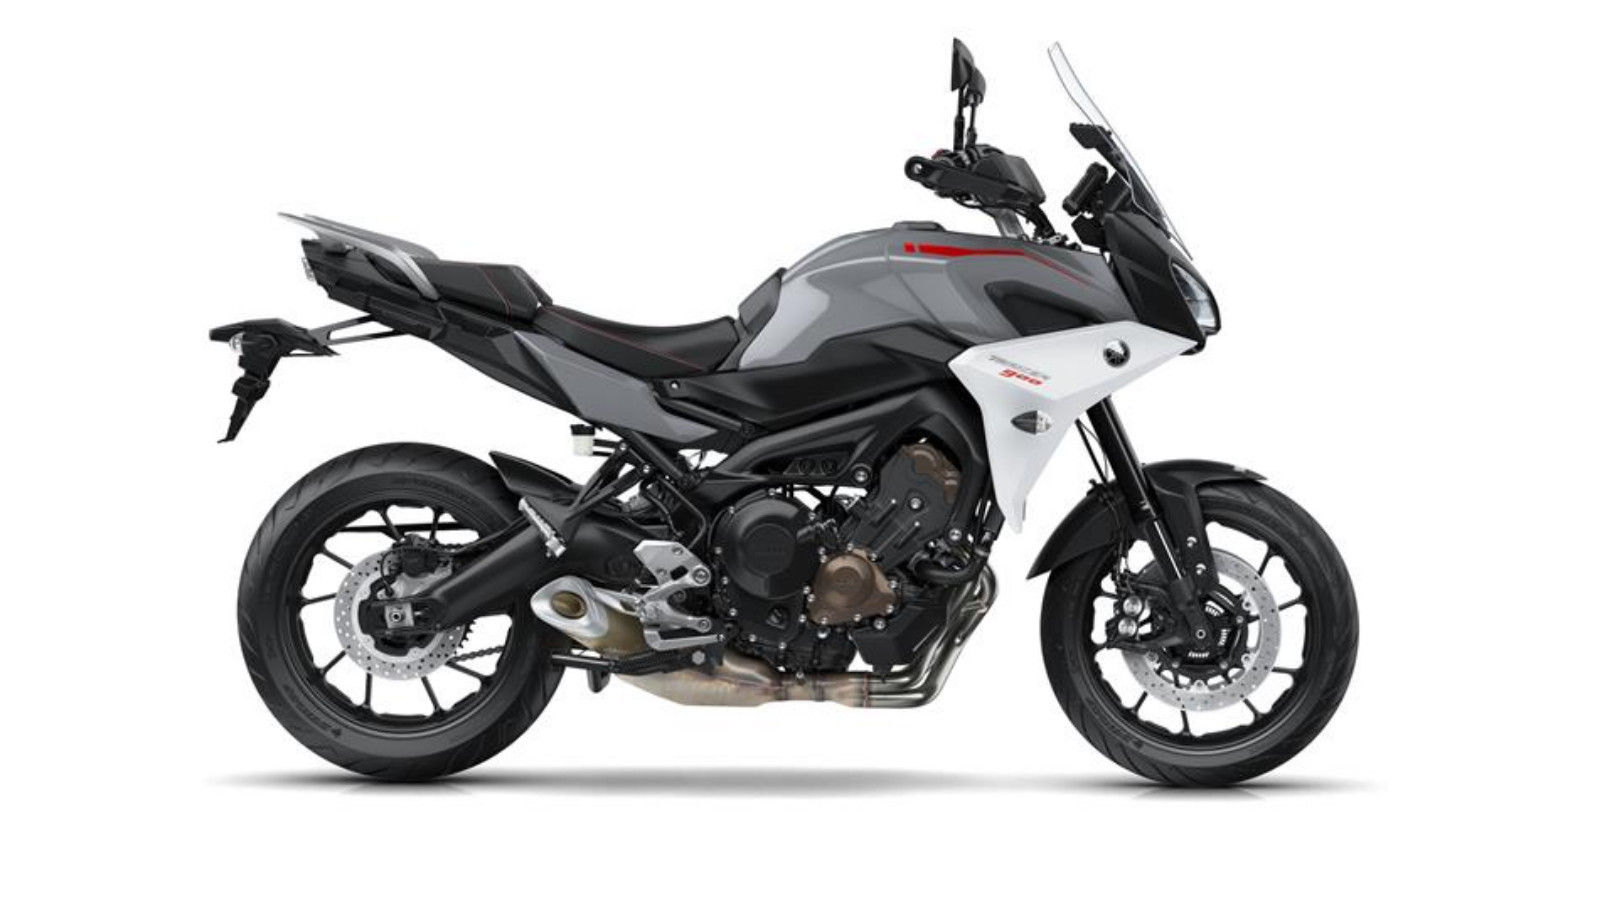 MT-125 ABS Modell 2017 SOFORT LIEFERBAR!